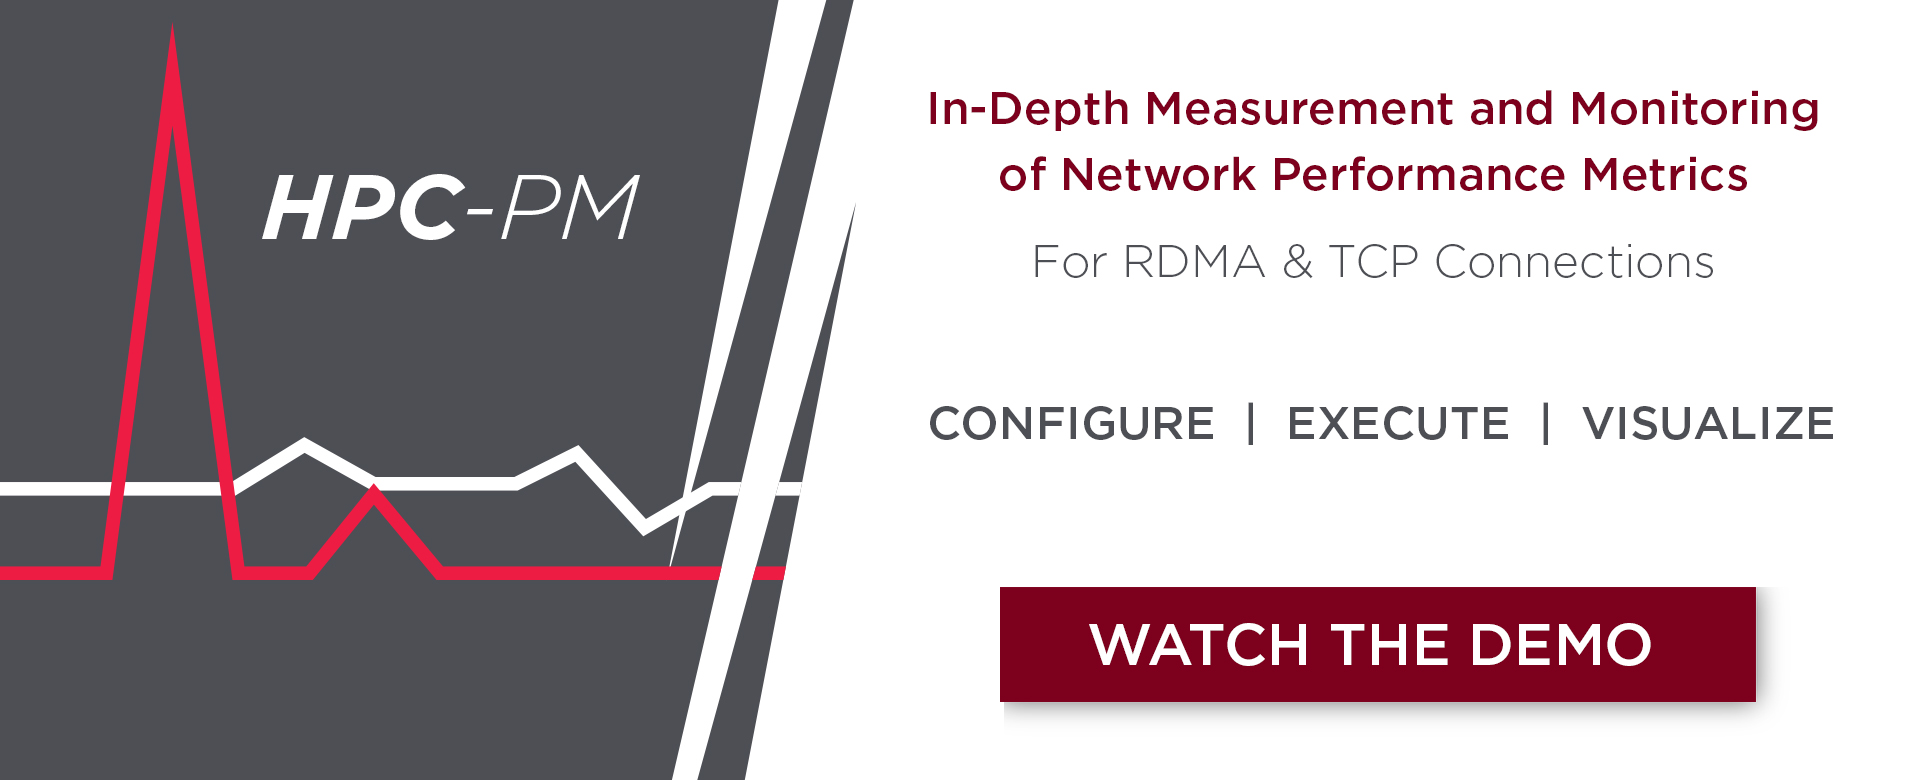 High Performance Computing Performance Monitor for RDMA and TCP Connections